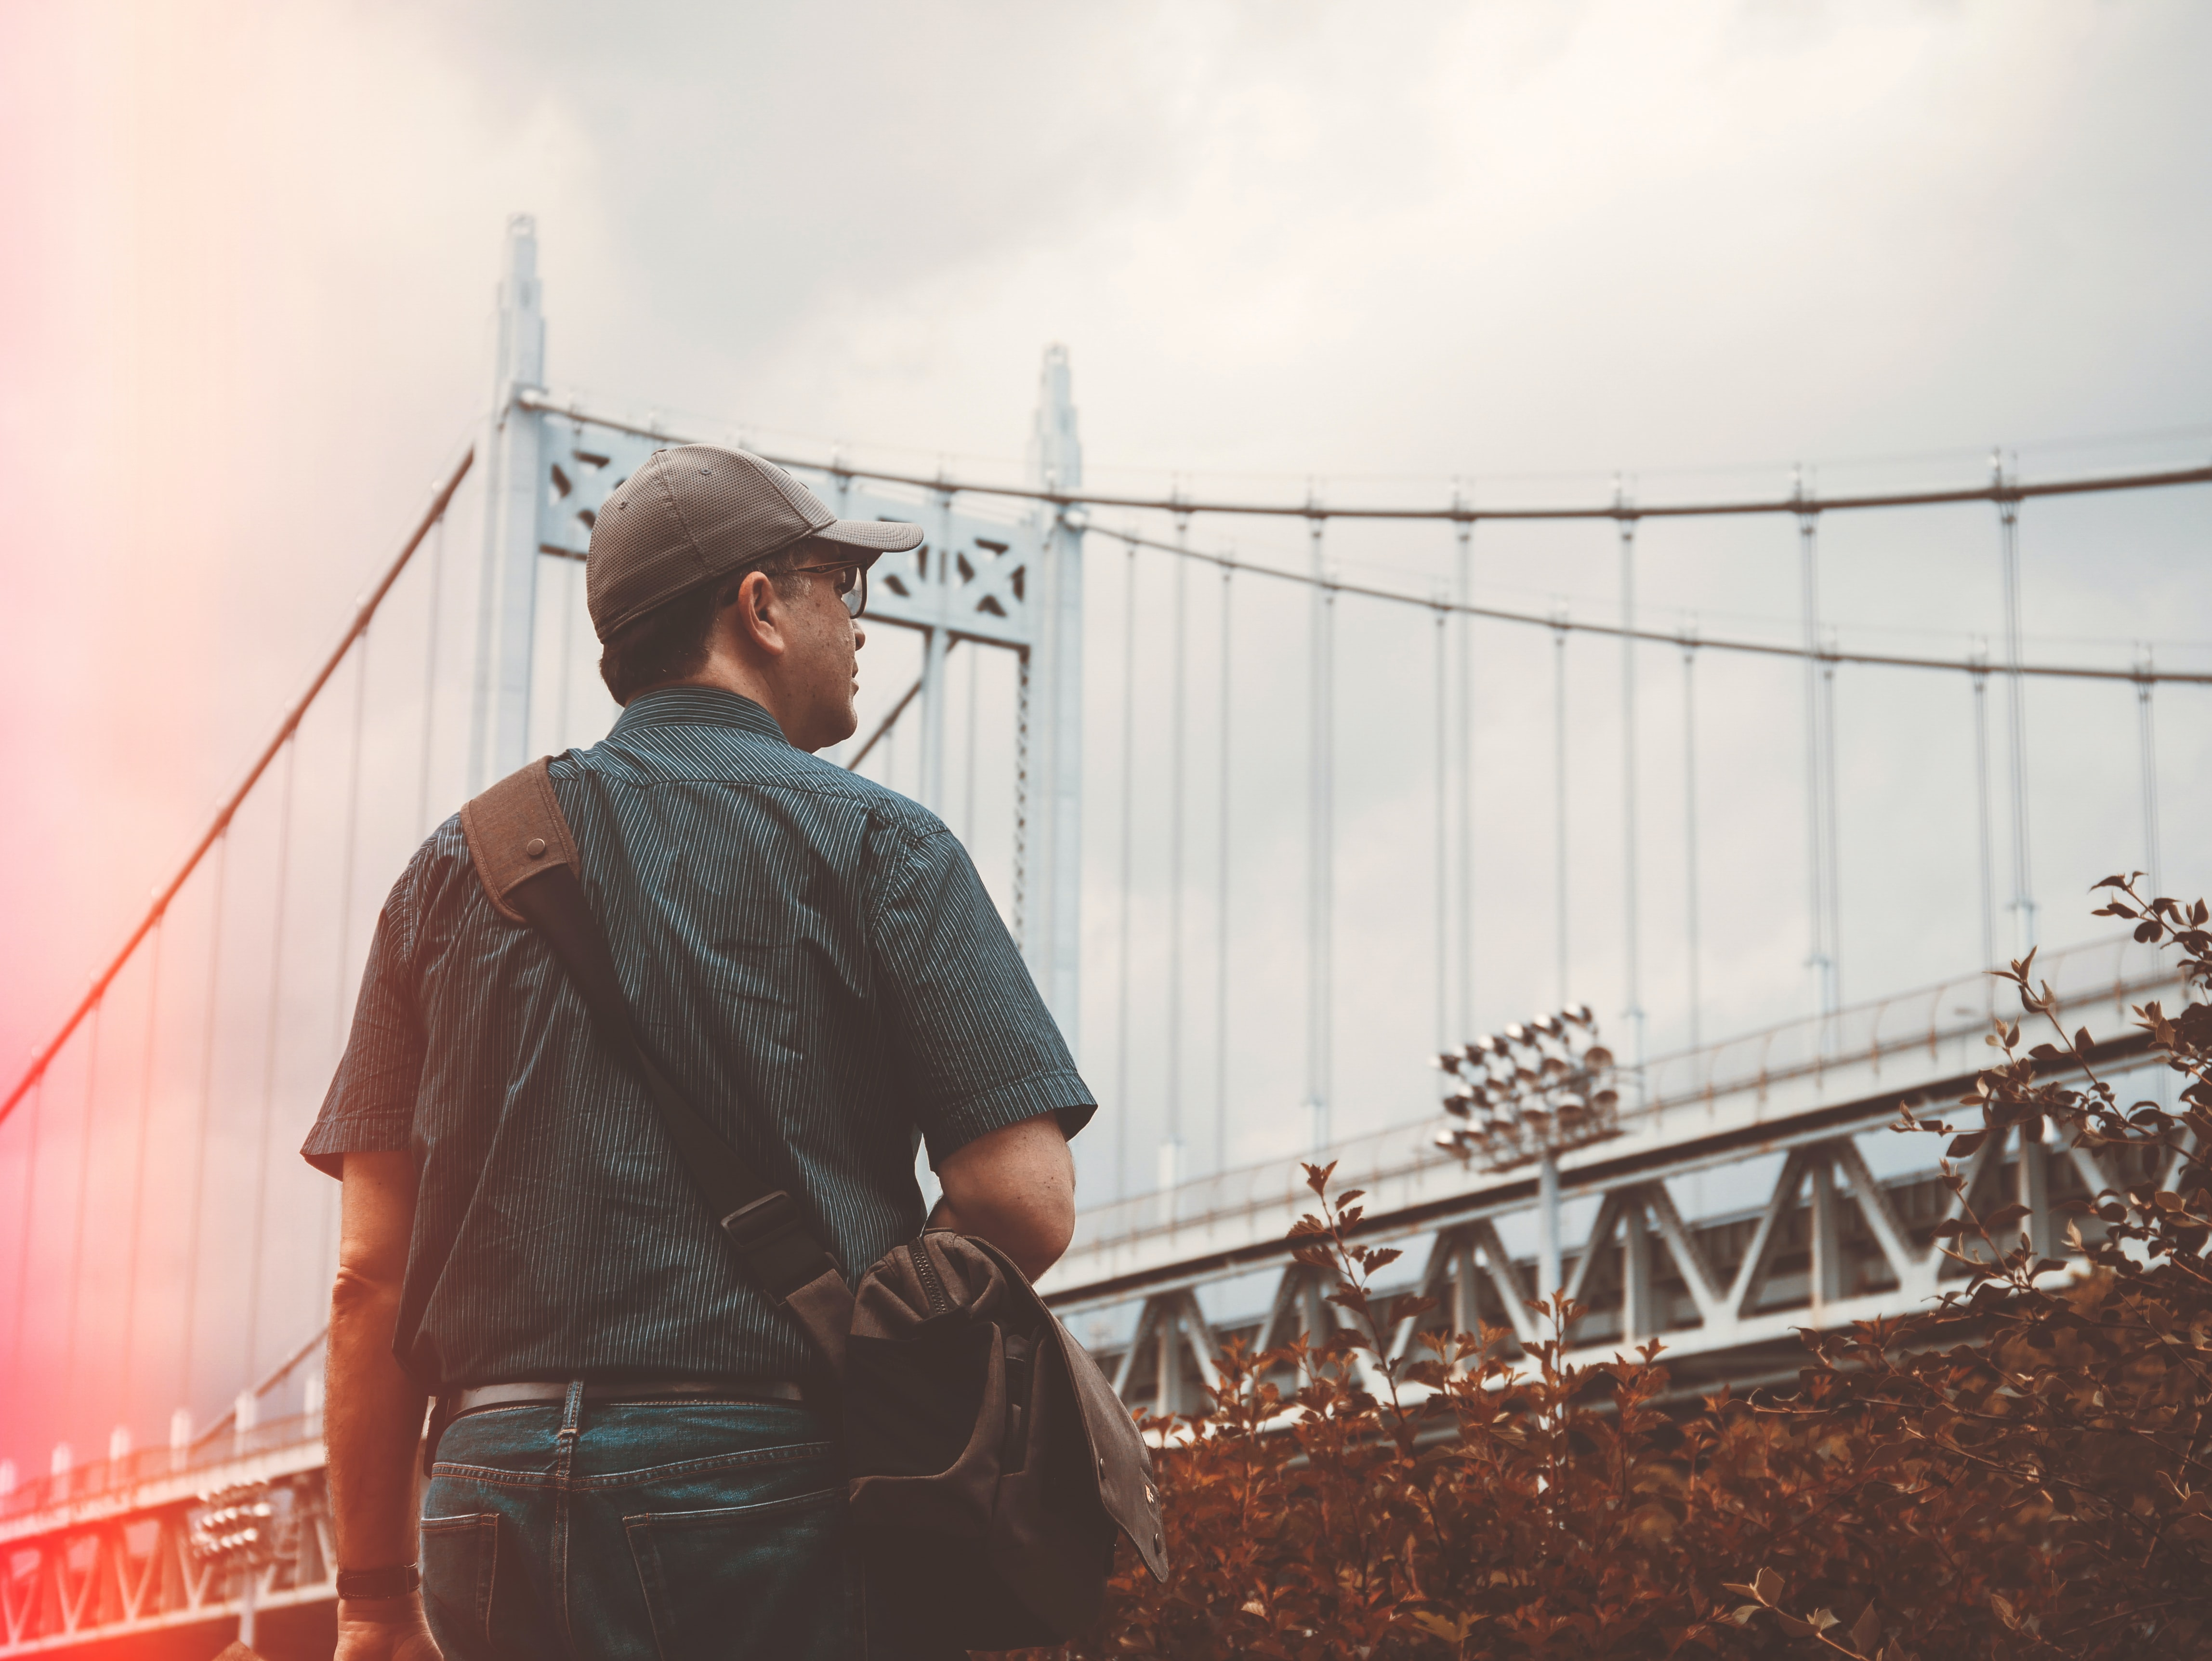 man standing near bridge